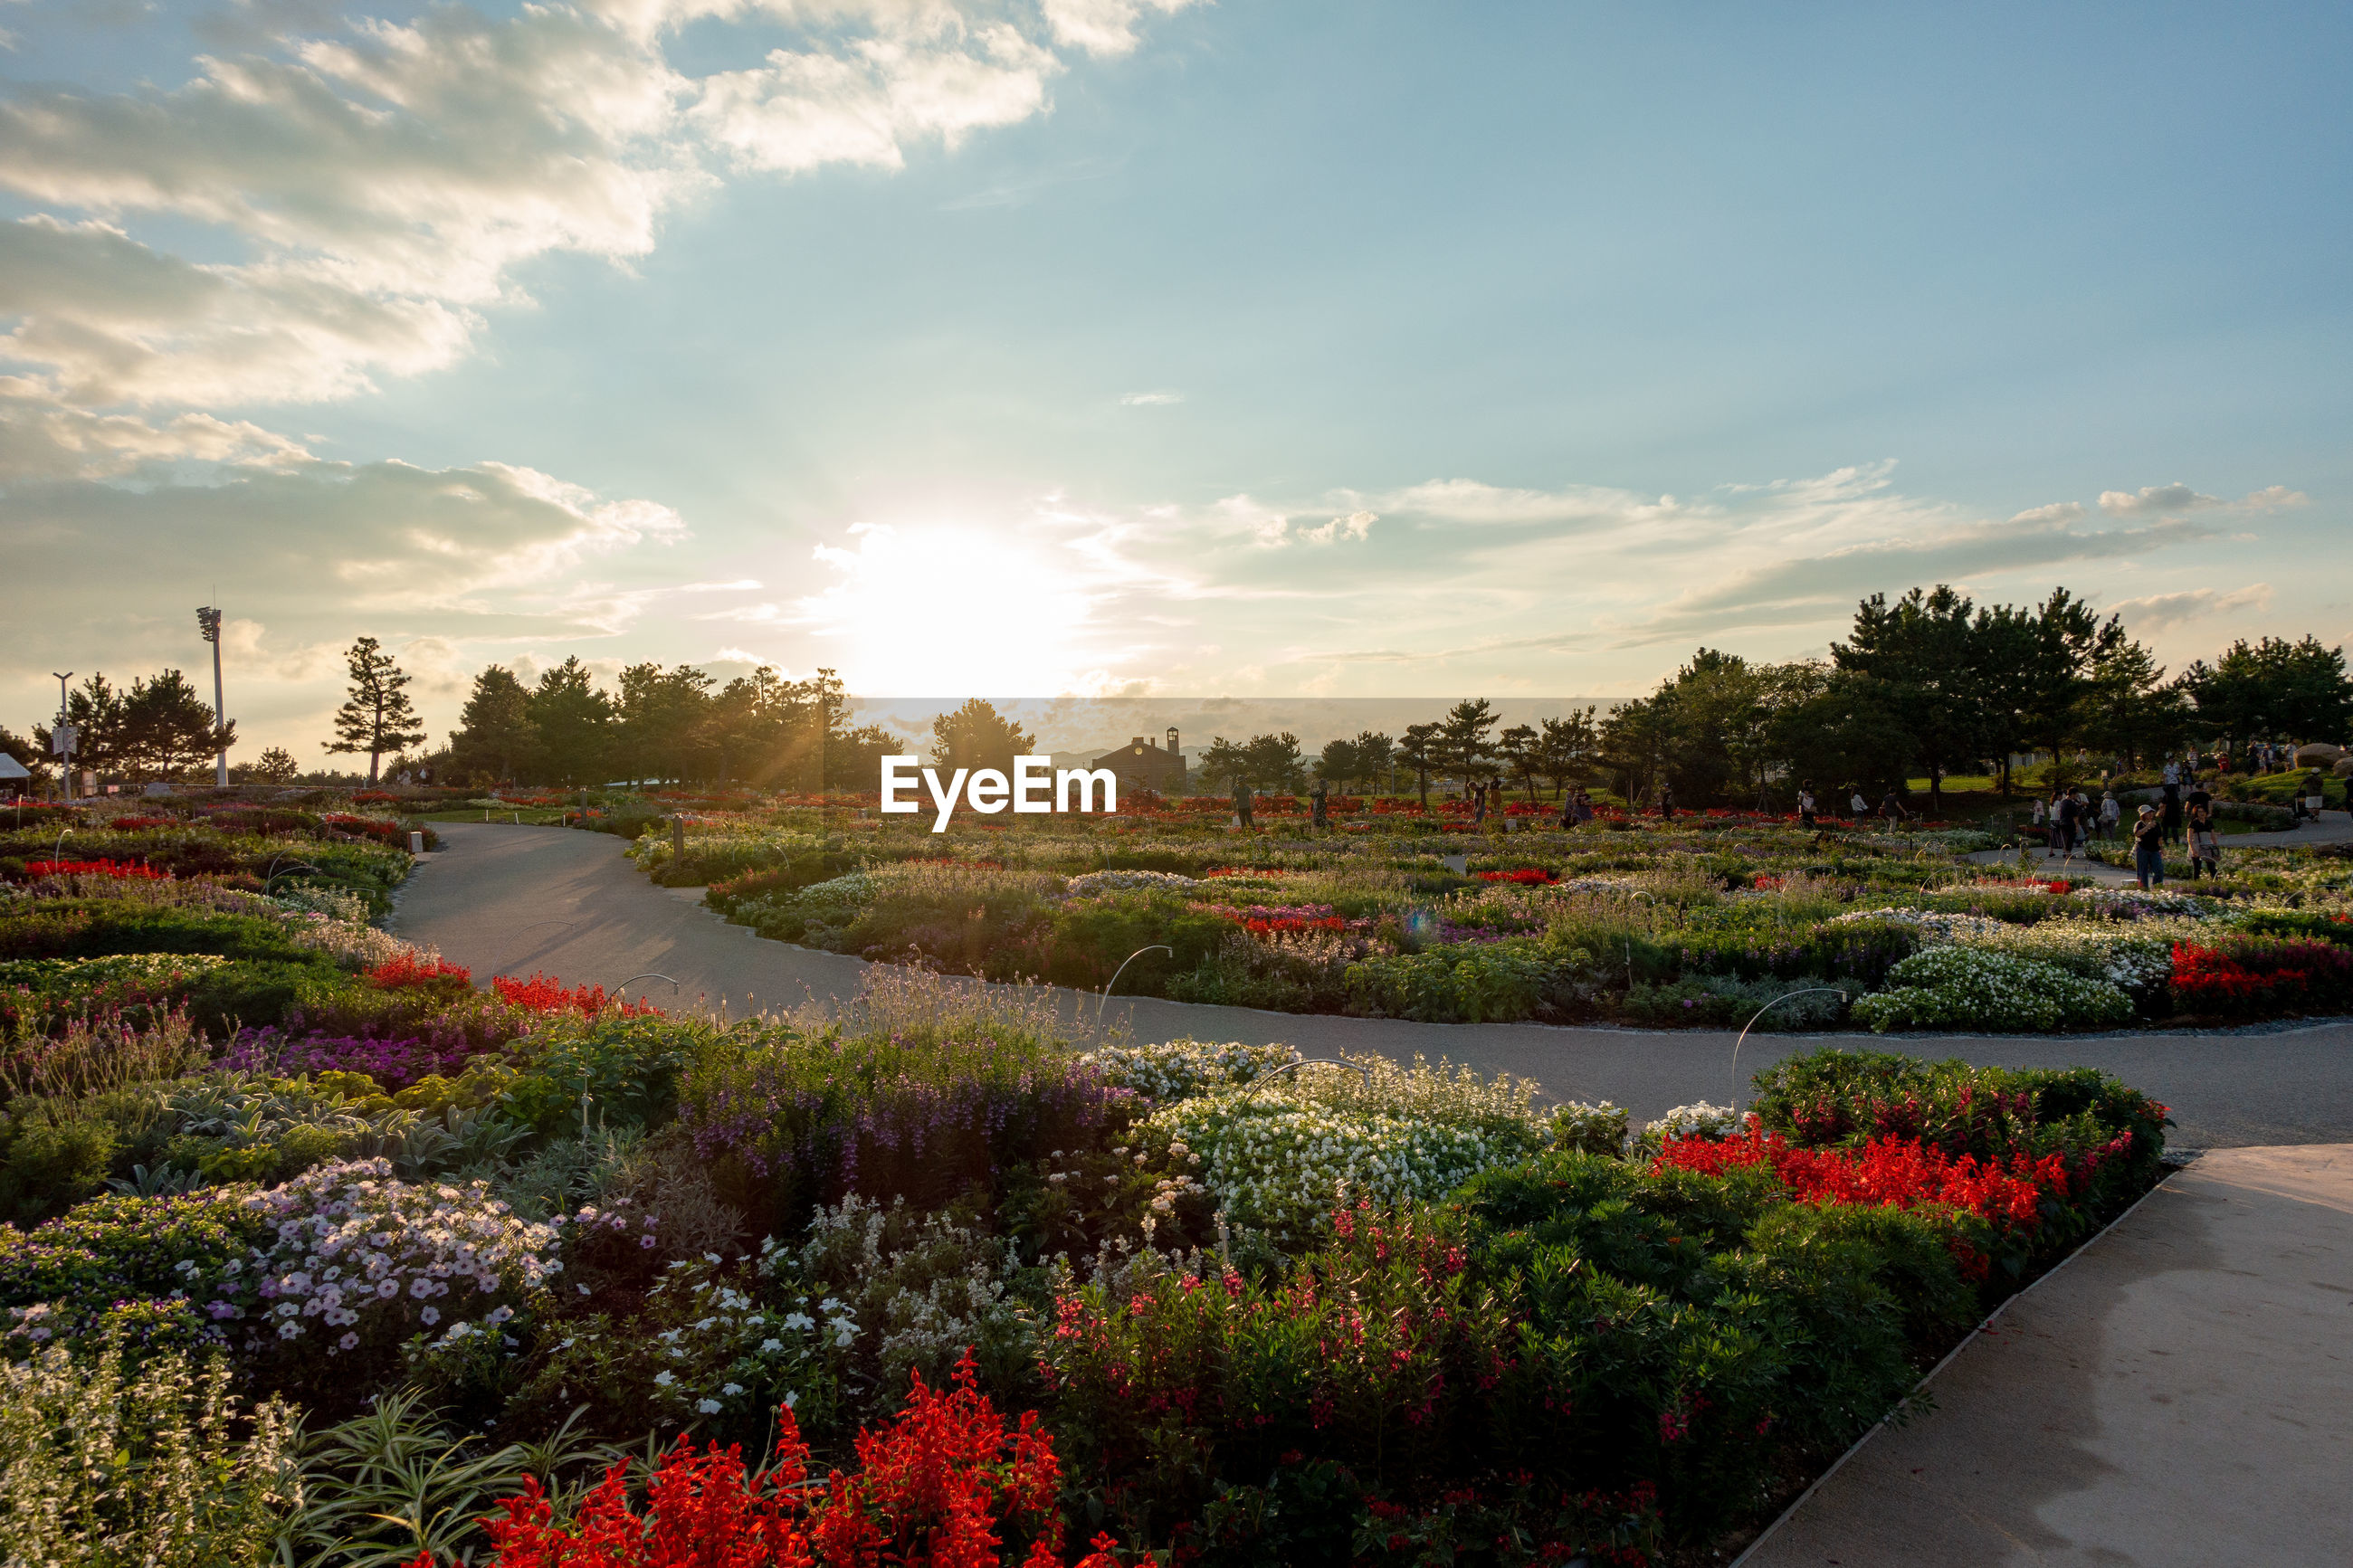 SCENIC VIEW OF FLOWERING PLANTS AND TREES AT SUNSET